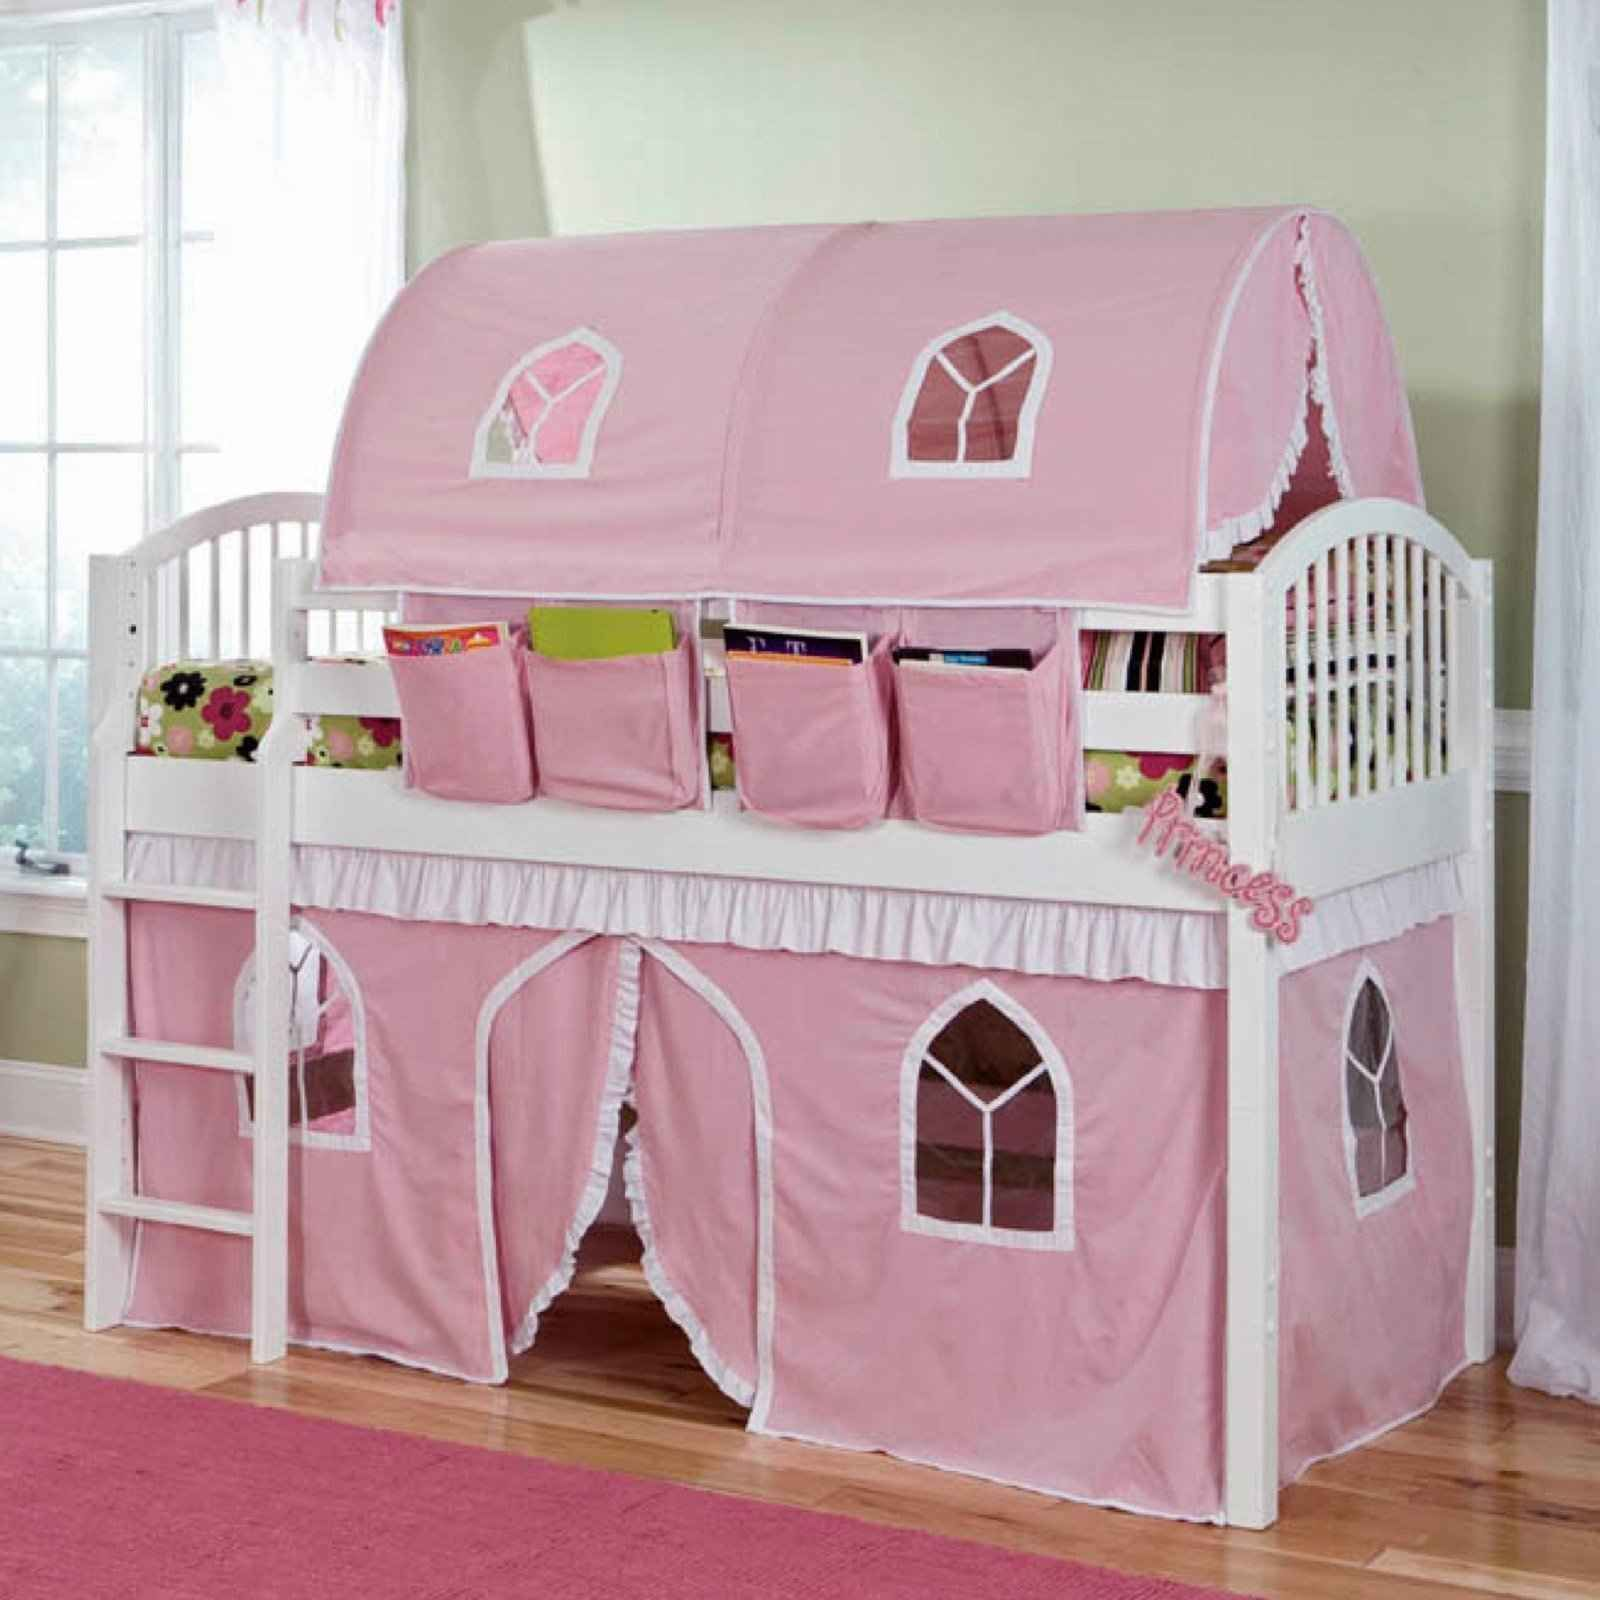 Girls Castle Tent Canopy Beds. Wouldnu0027t take up the whole room! & Girls Castle Tent Canopy Beds. Wouldnu0027t take up the whole room ...